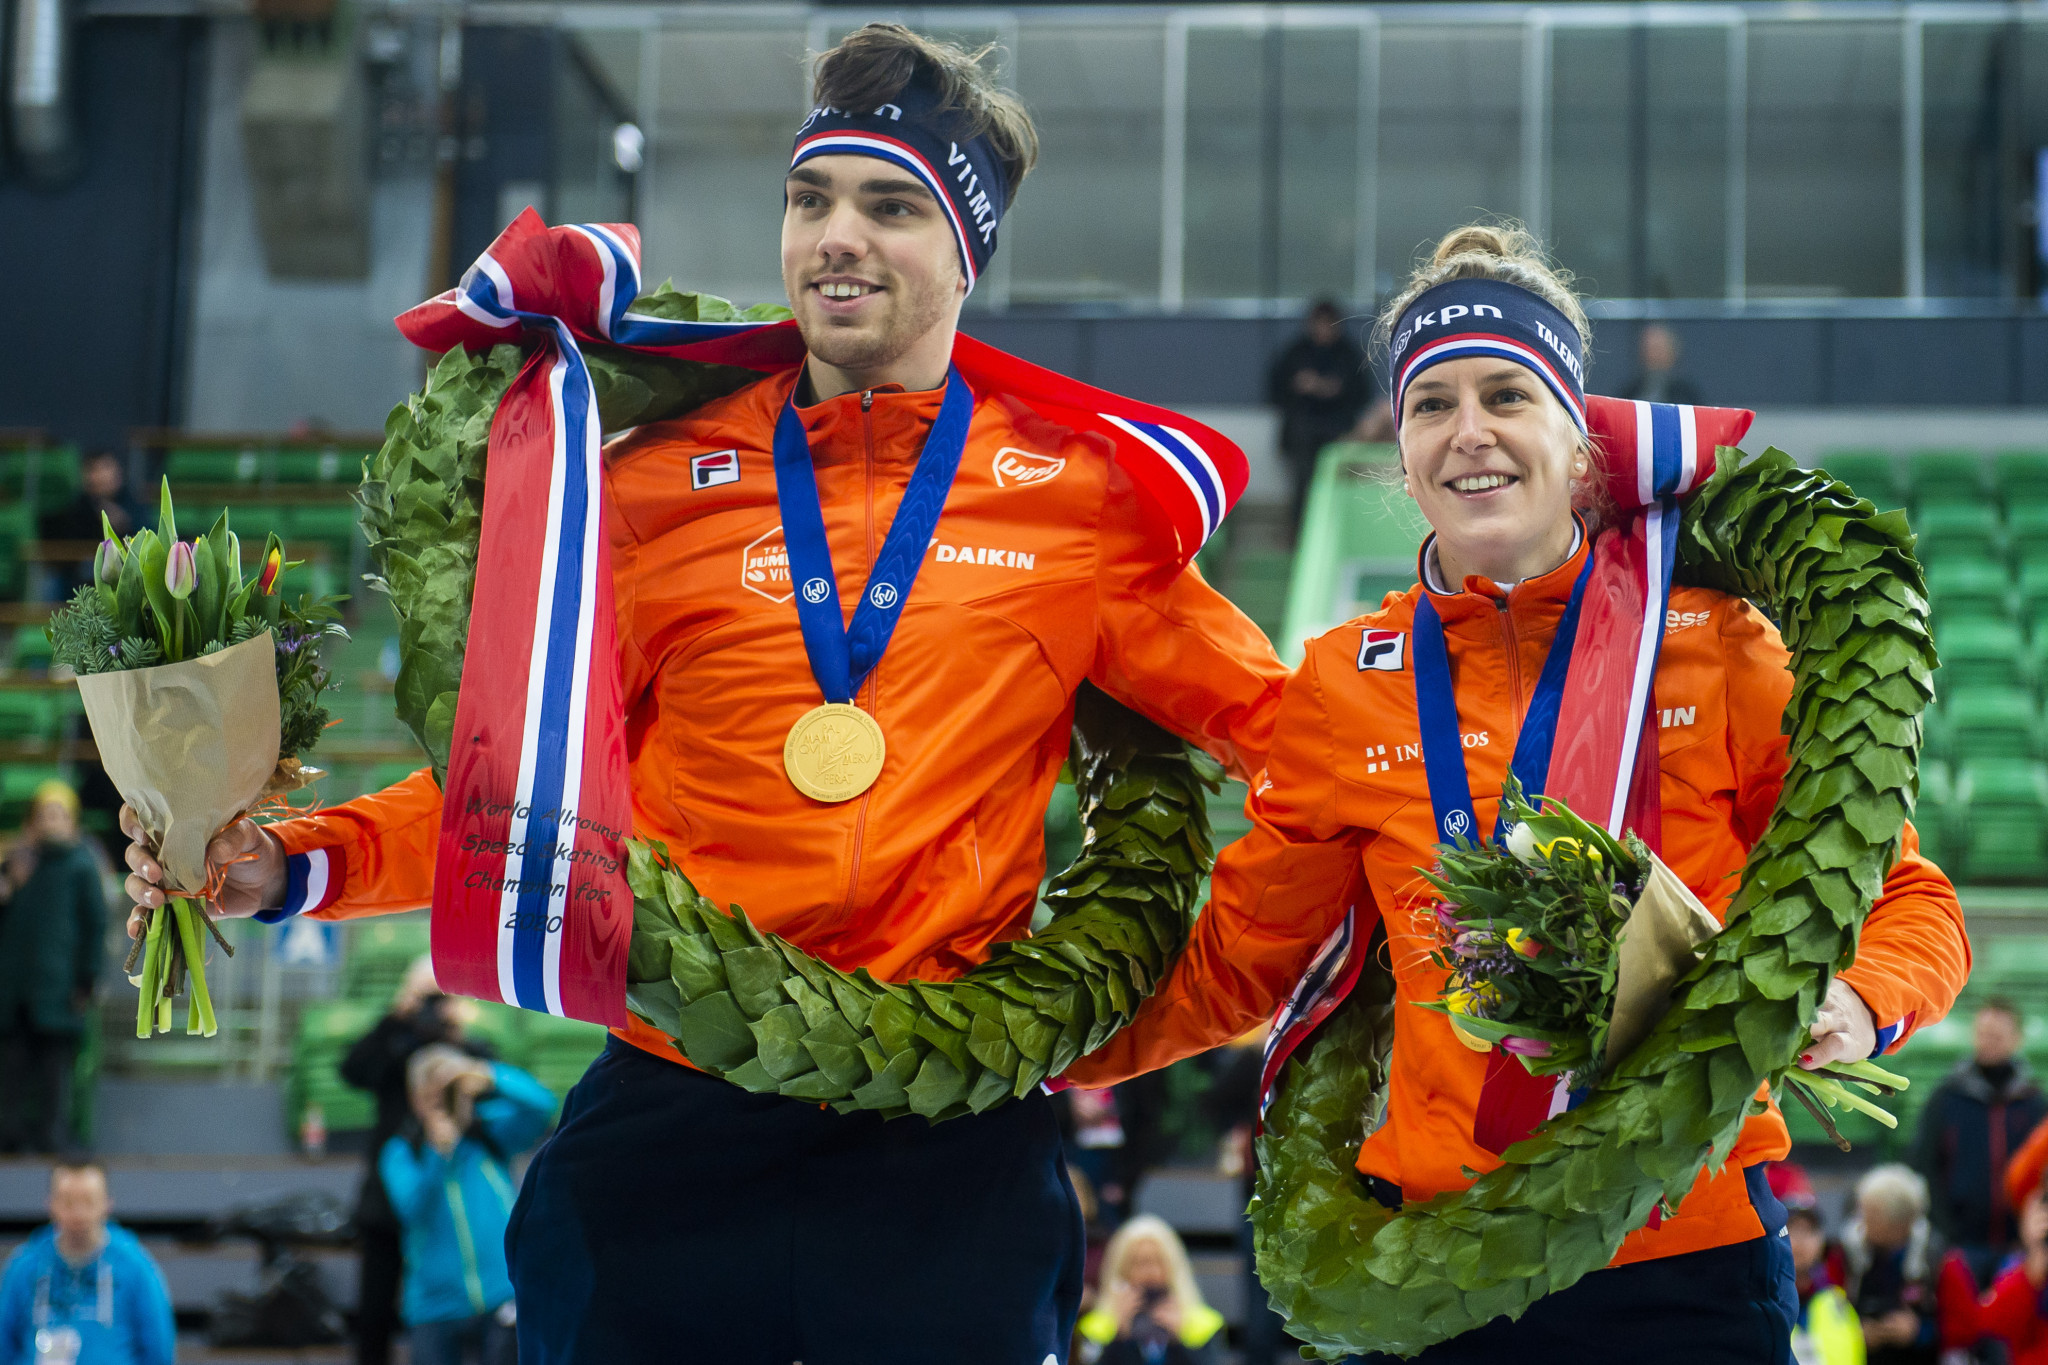 Roest and Wüst crowned World Allround Speed Skating champions again in Hamar